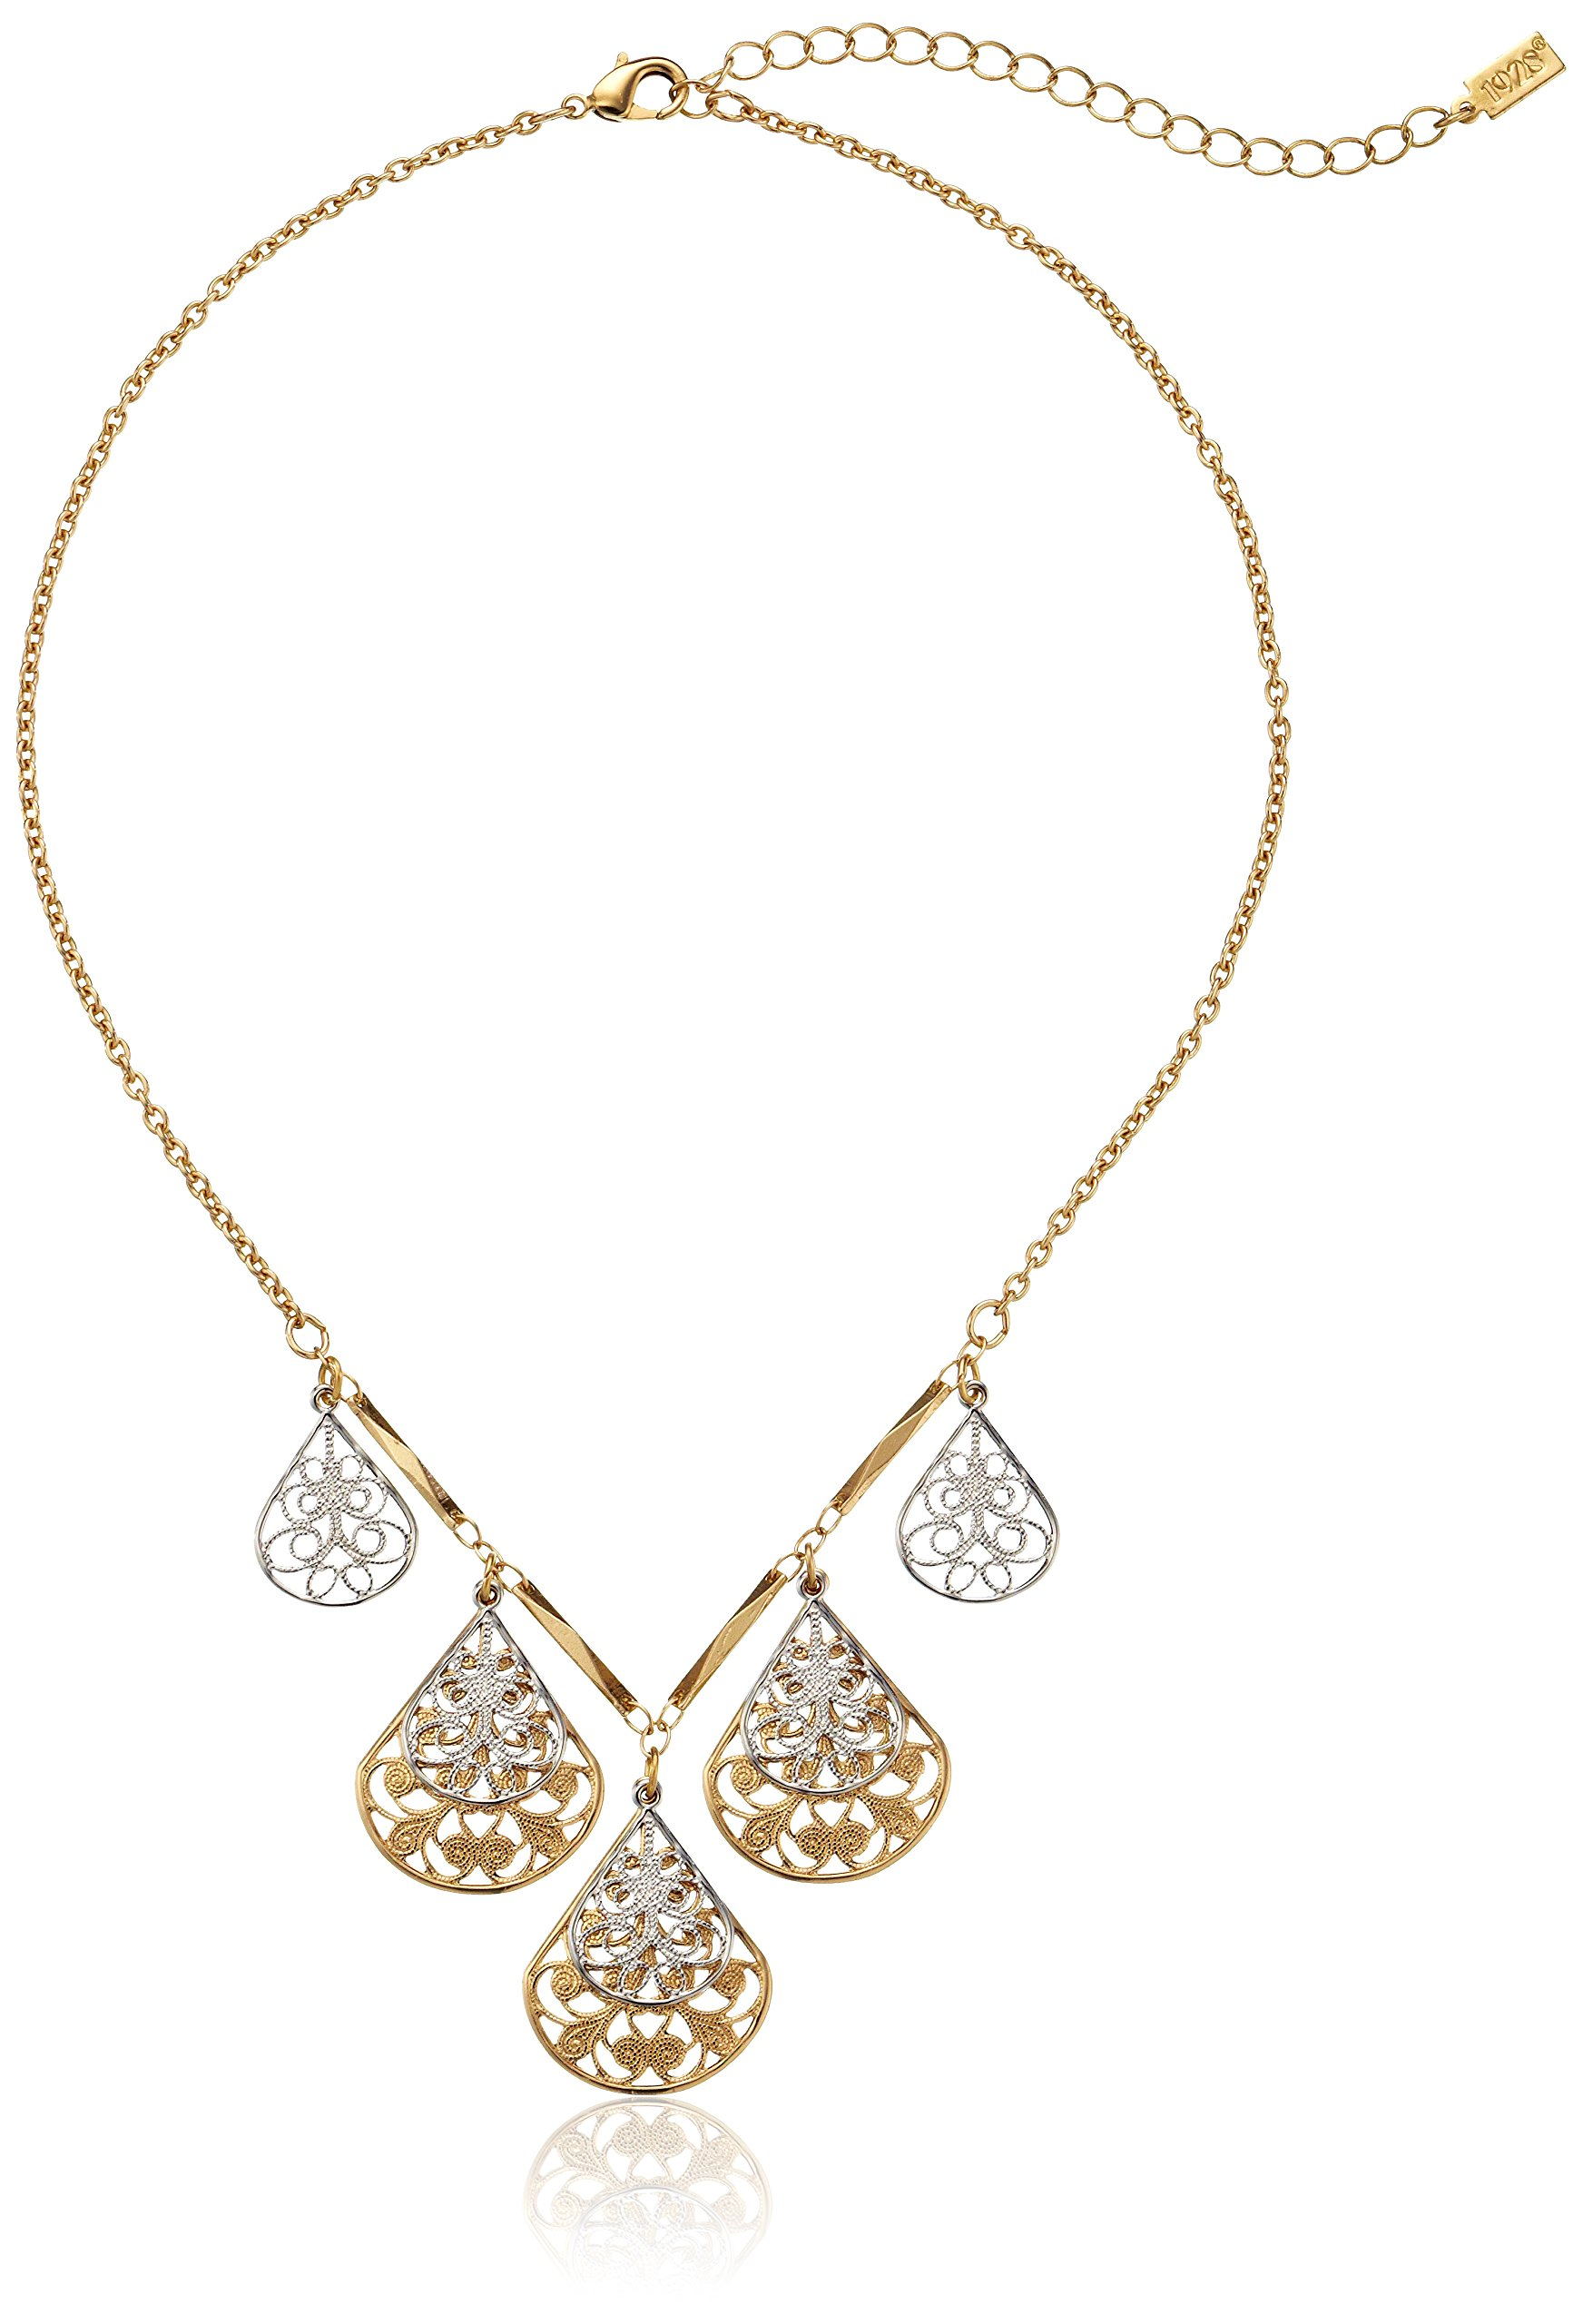 1928 Jewelry Gold and Silver-Tone Filigree Teardrop Collar Adjustable Necklace, 16''